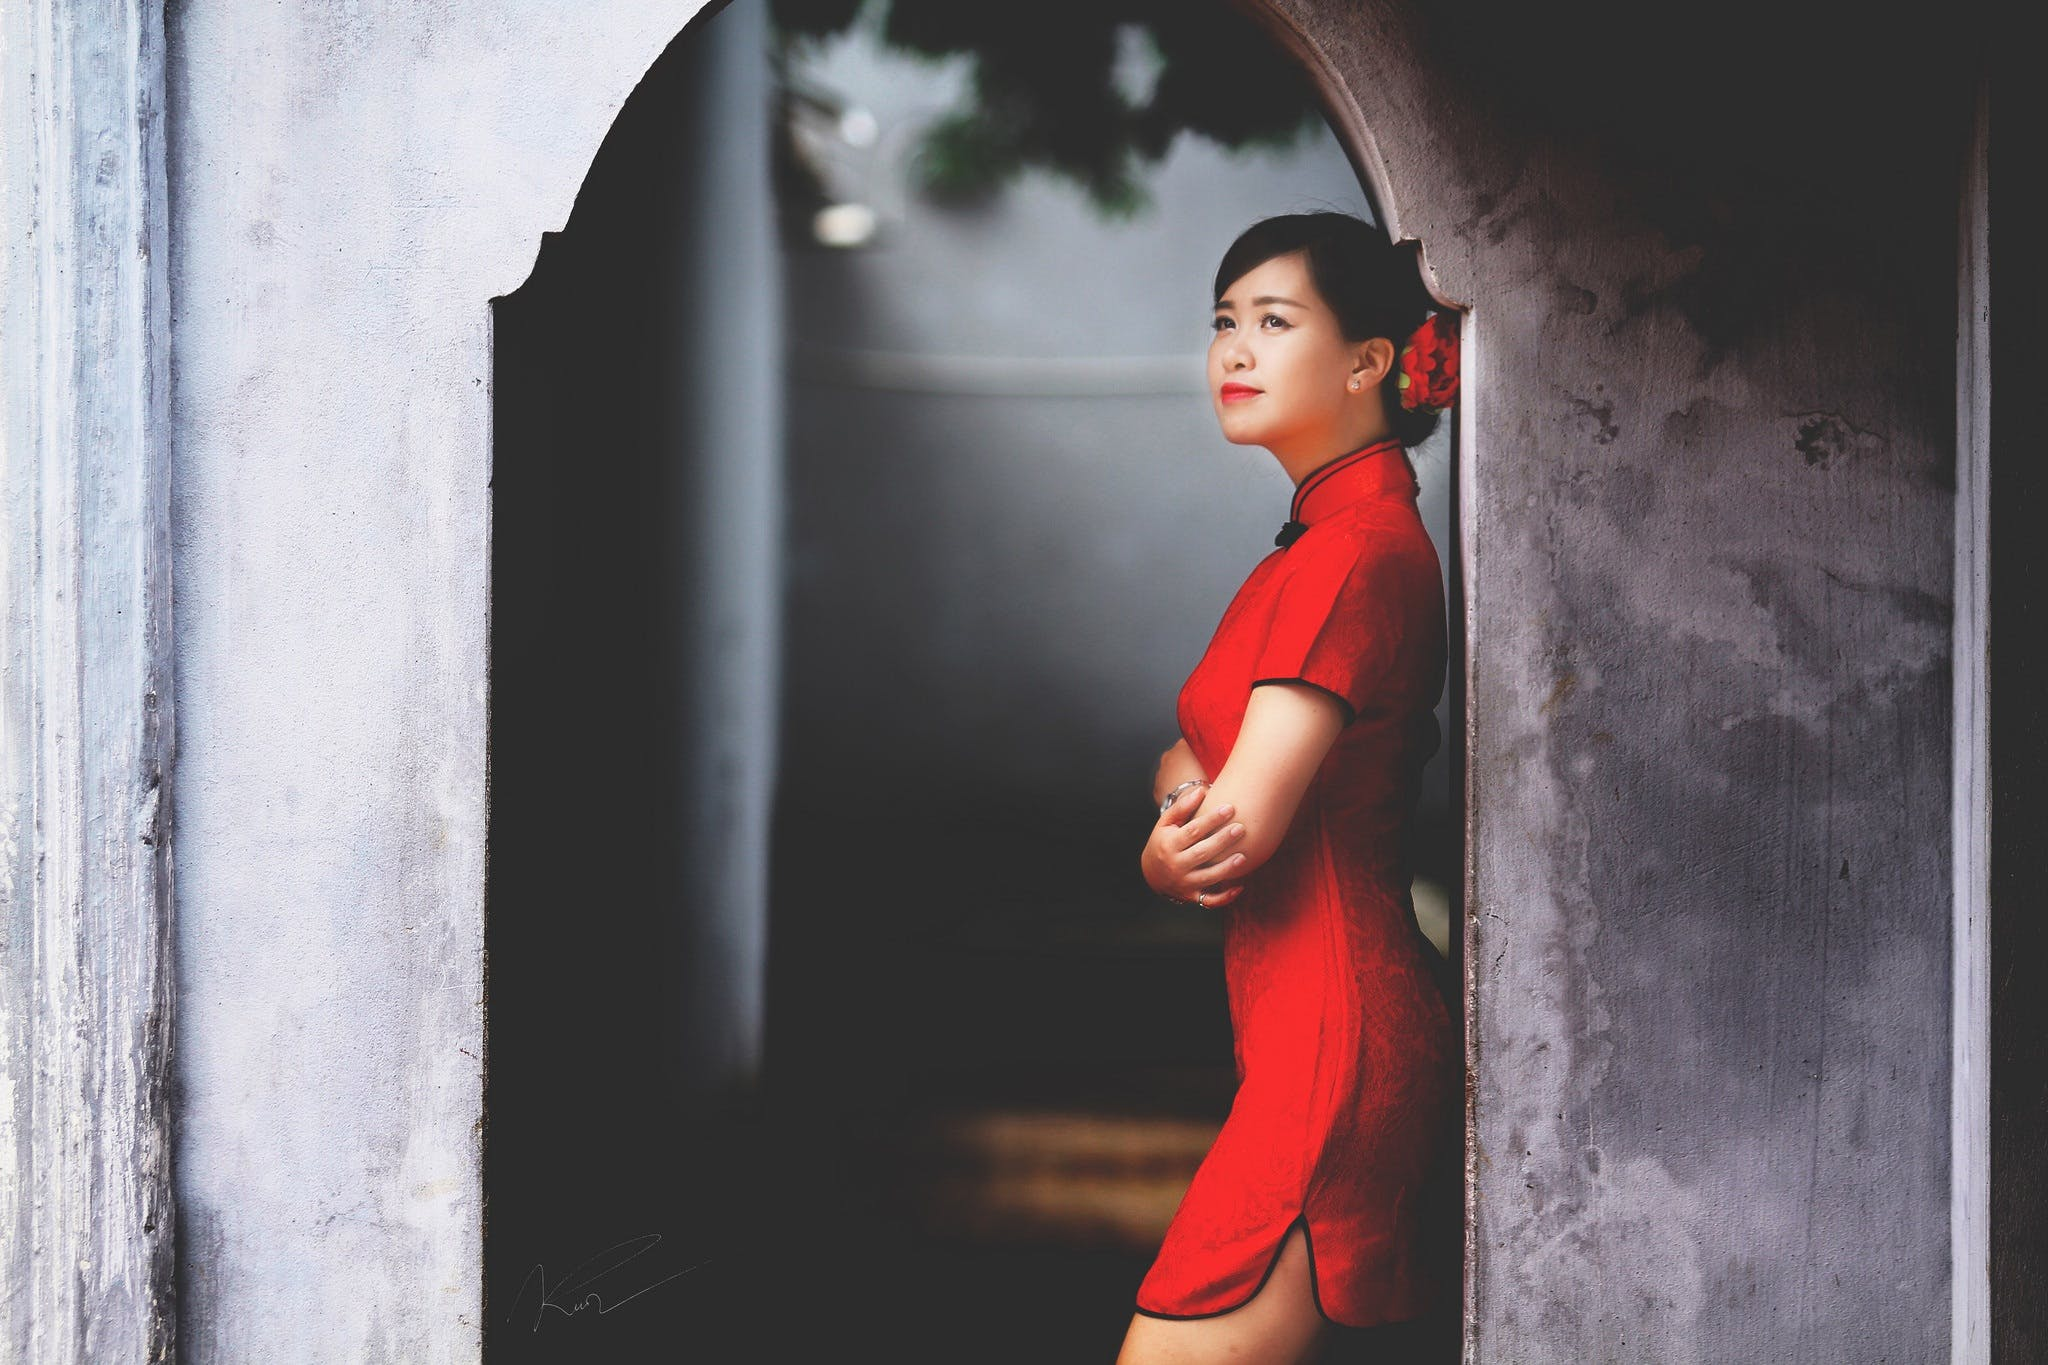 Woman in Red Mini Dress Leaning on Wall